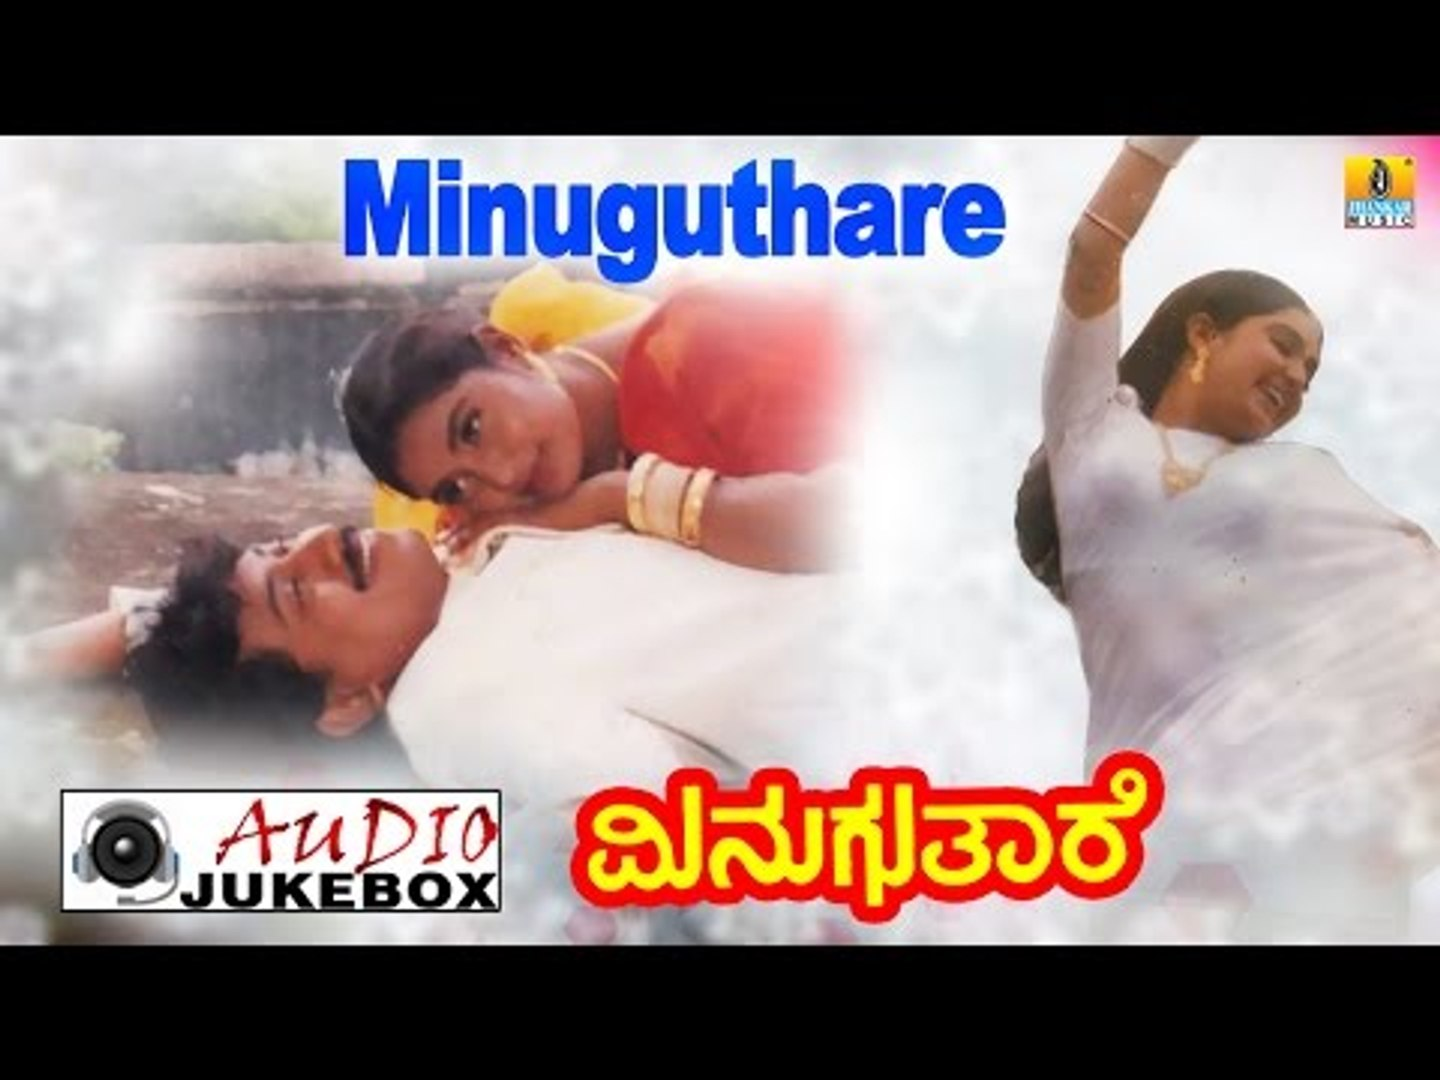 Minuguthare I Kannada Film Audio Jukebox I Kumar Govind, Shruthi I Jhankar Music